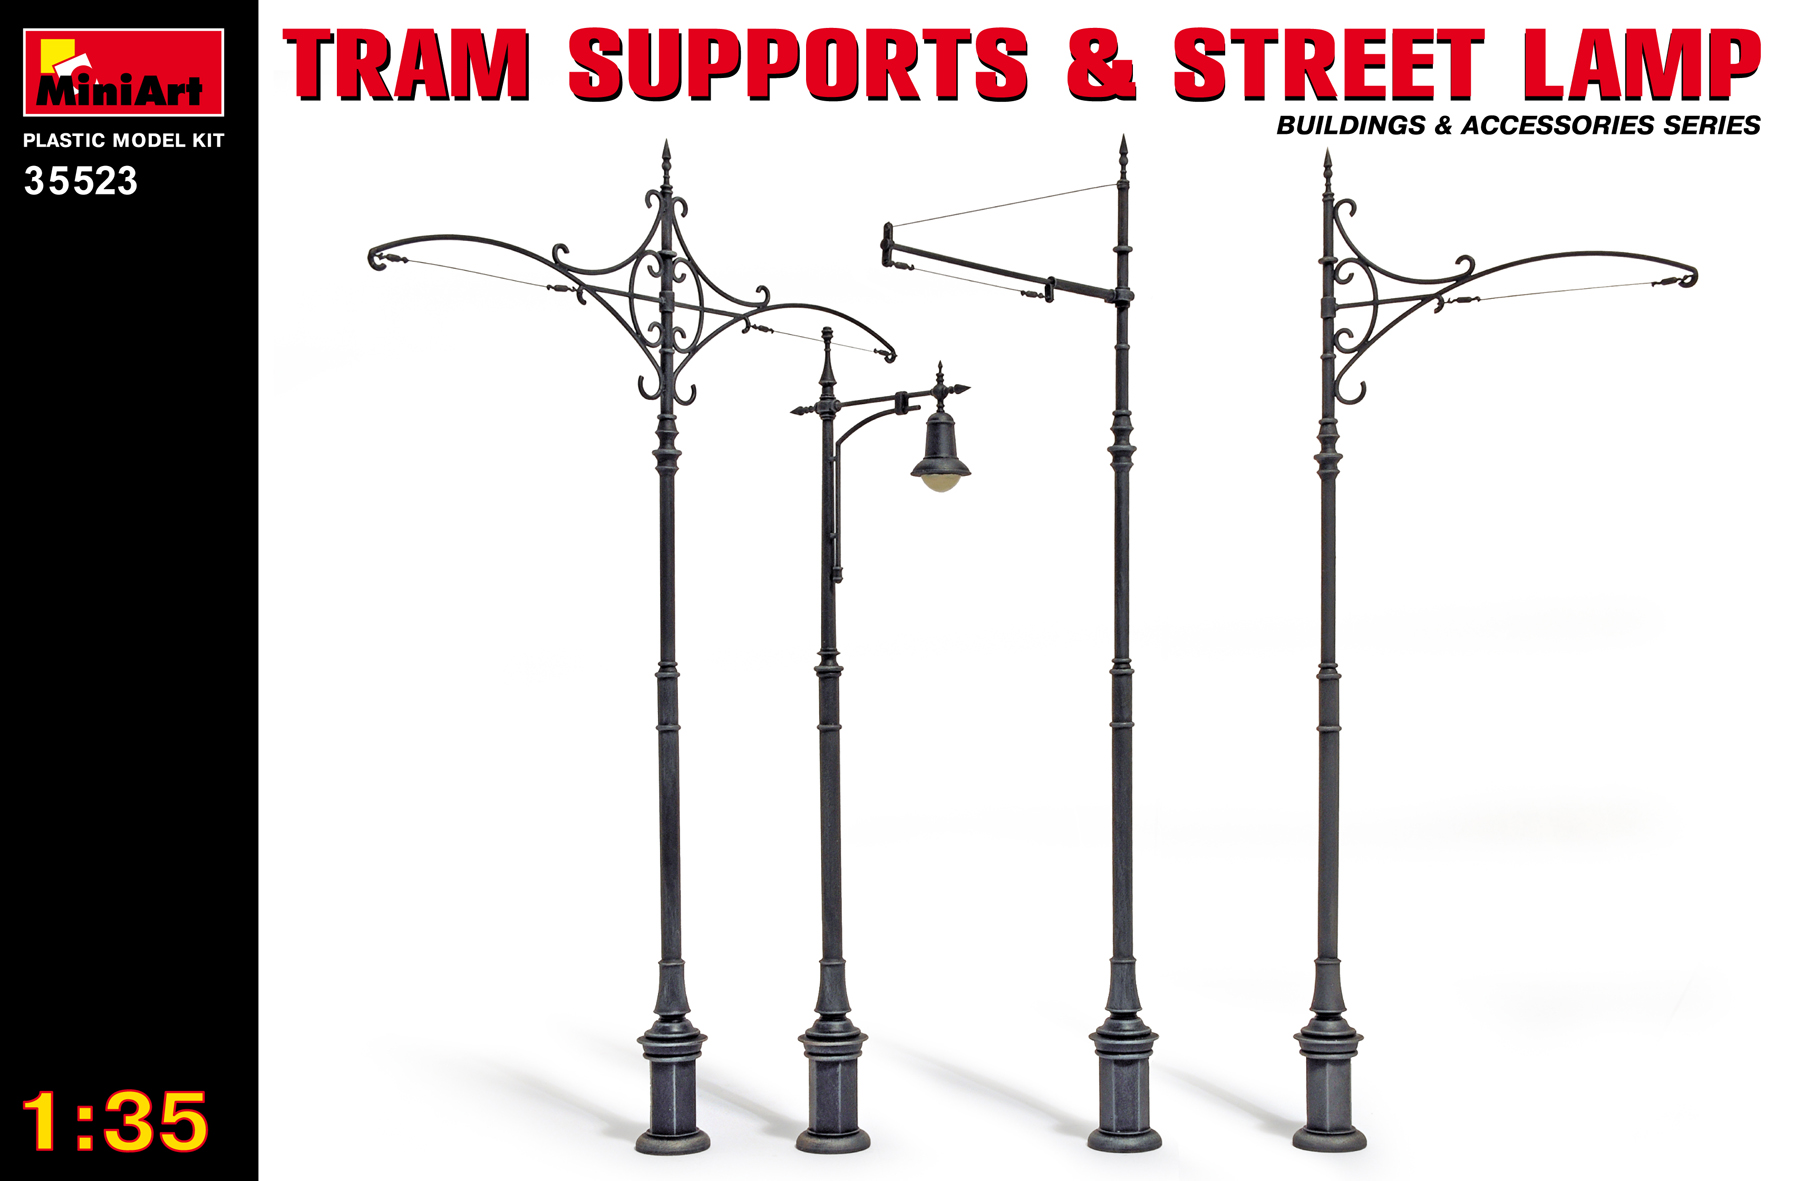 35523 TRAM SUPPORTS & STREET LAMP